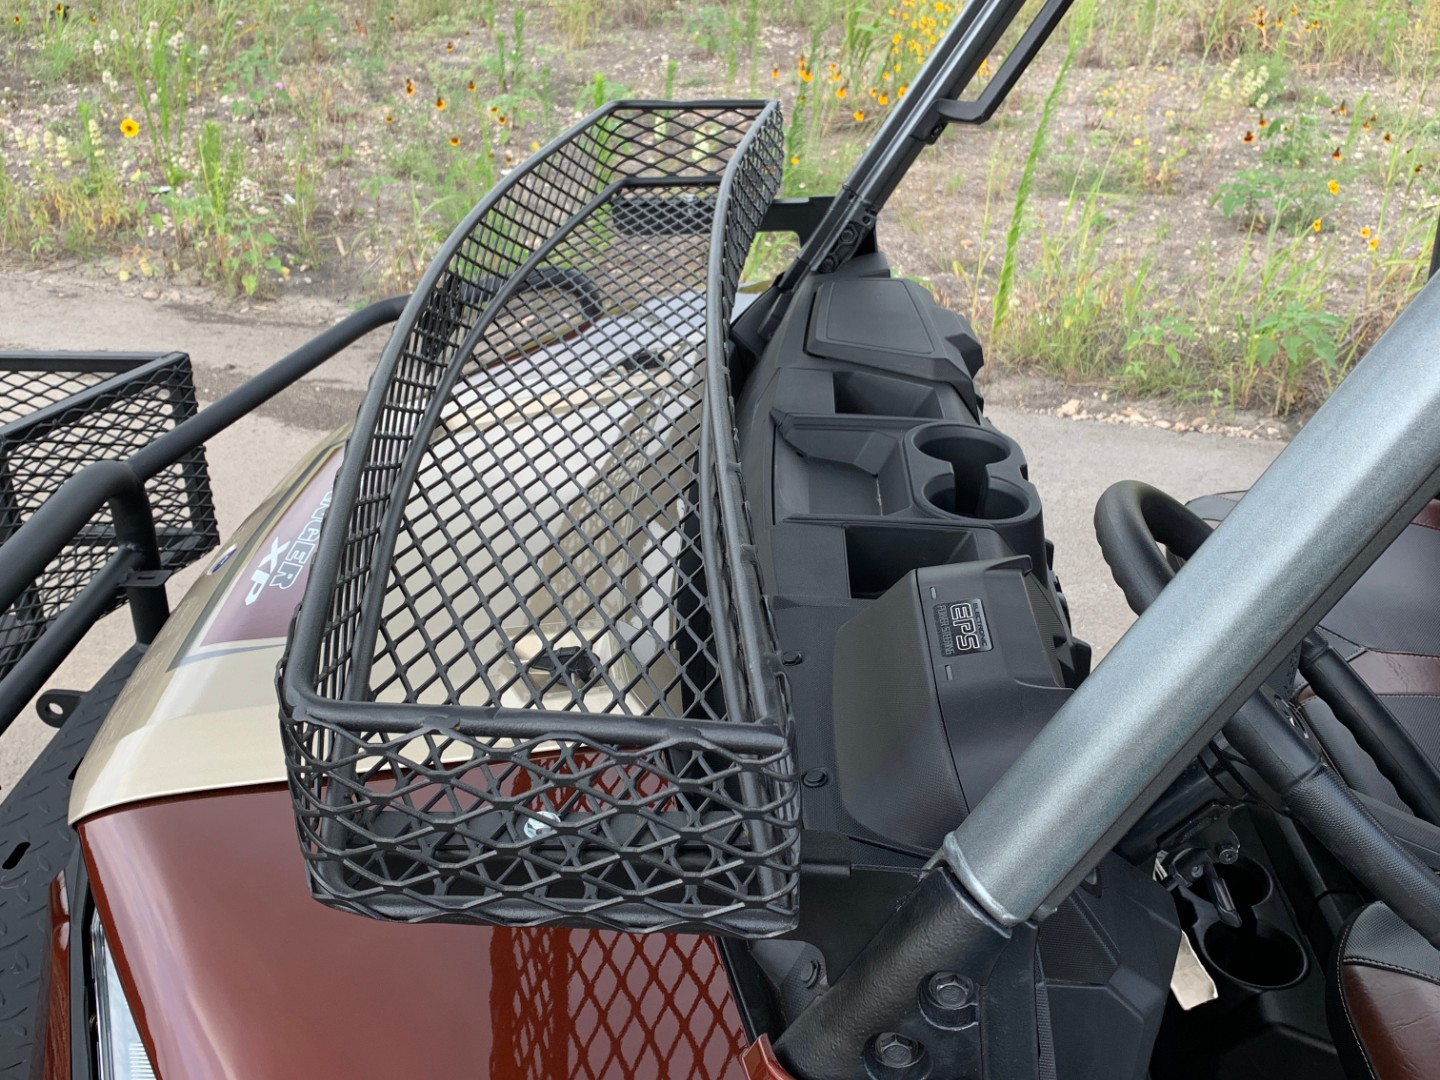 polaris-1000-ranger-front-basket-roll-bar-rack-gear.jpg